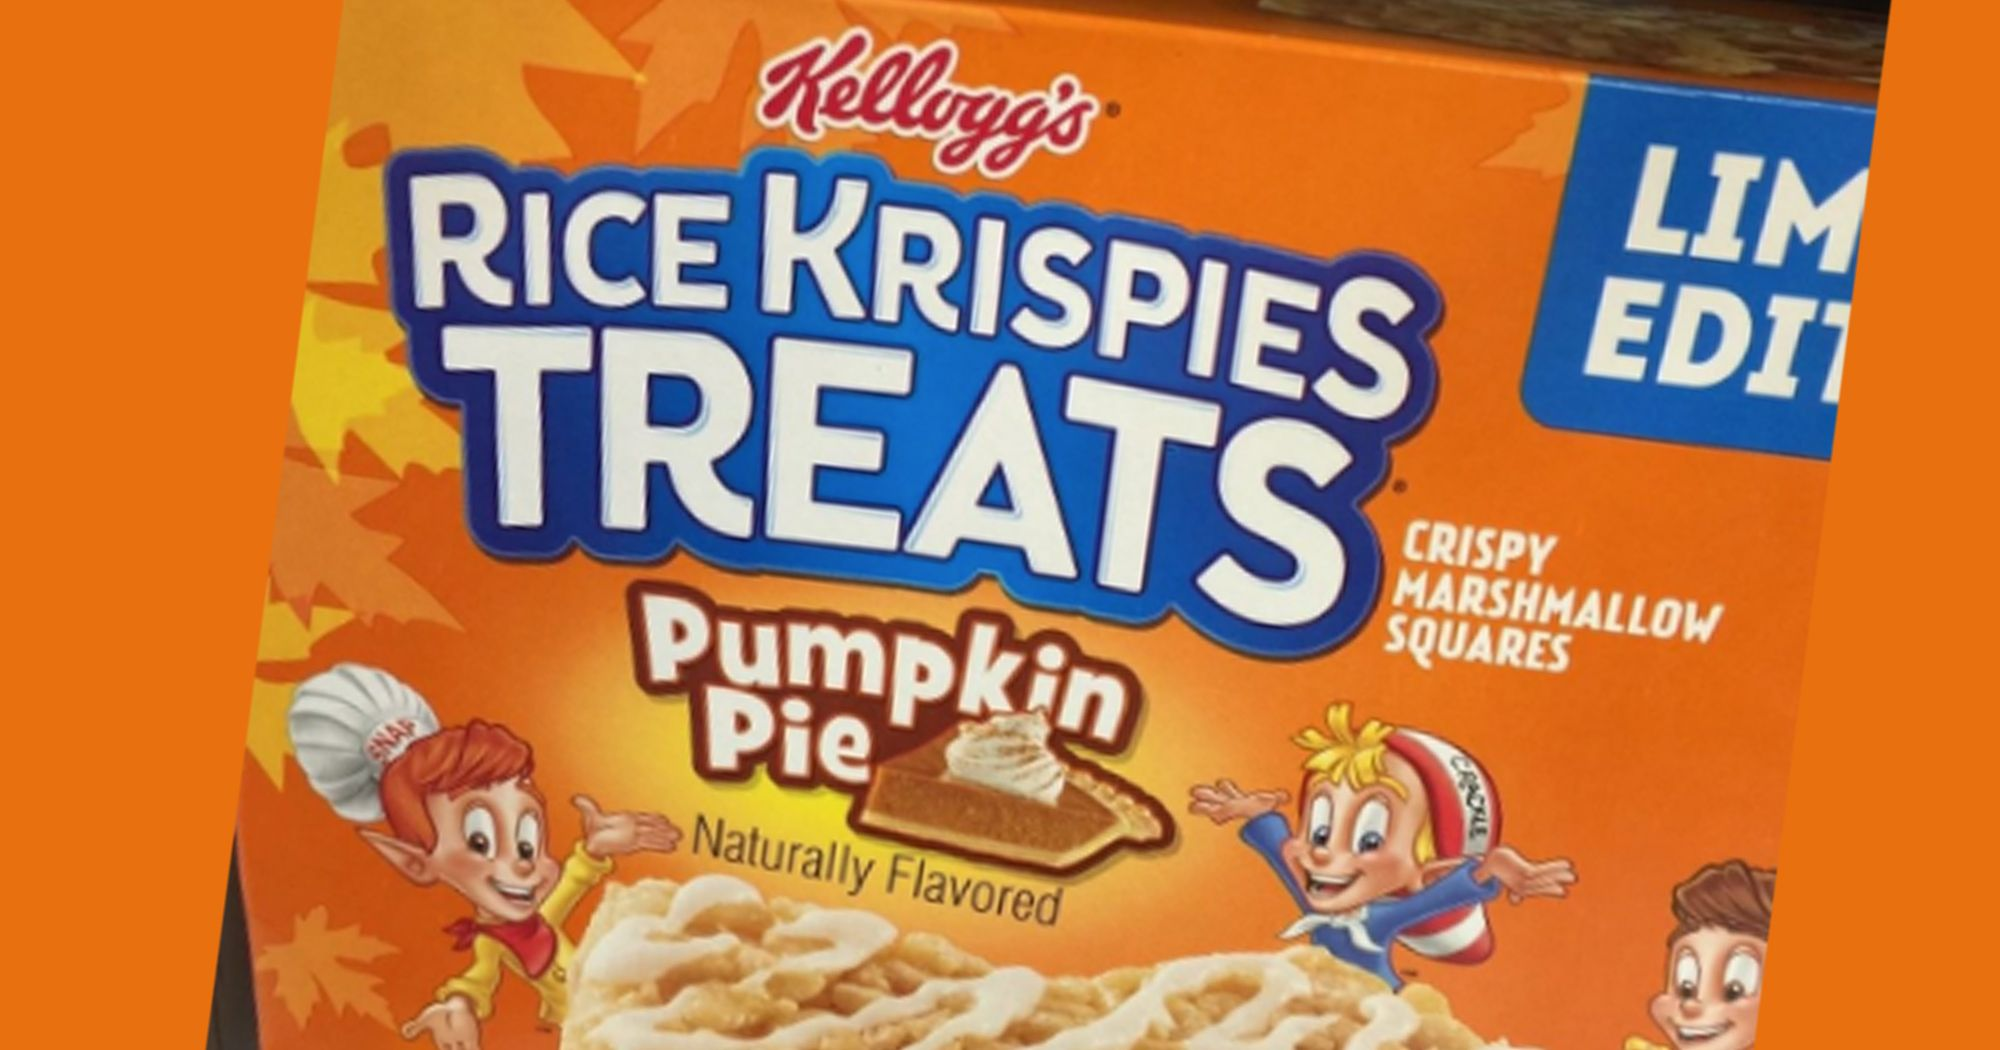 Rice Krispies Treats Pumpkin Pie Limited Edition Flavor